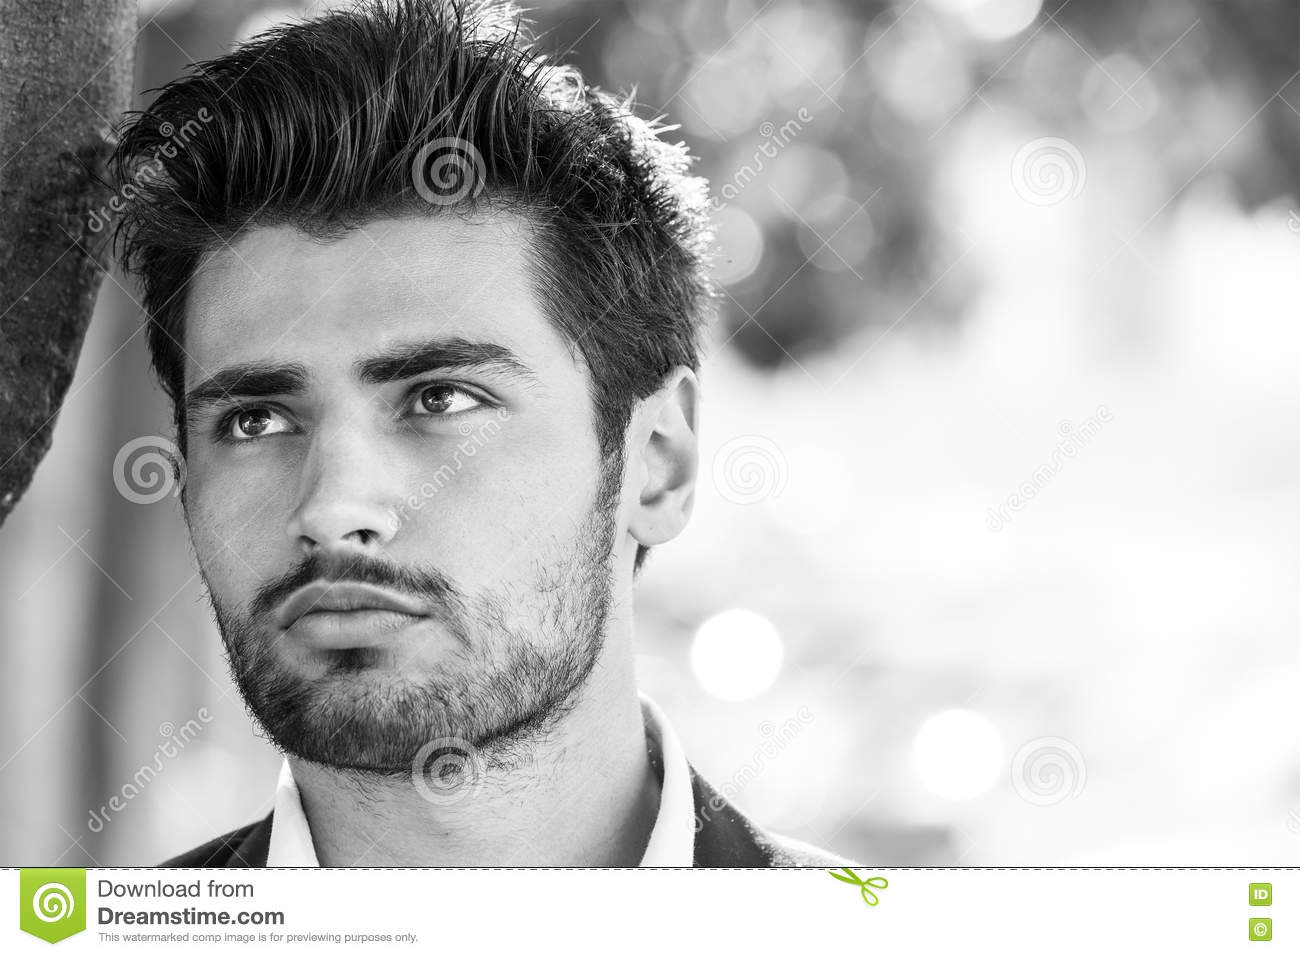 Handsome model man portrait. Hope. Black and white